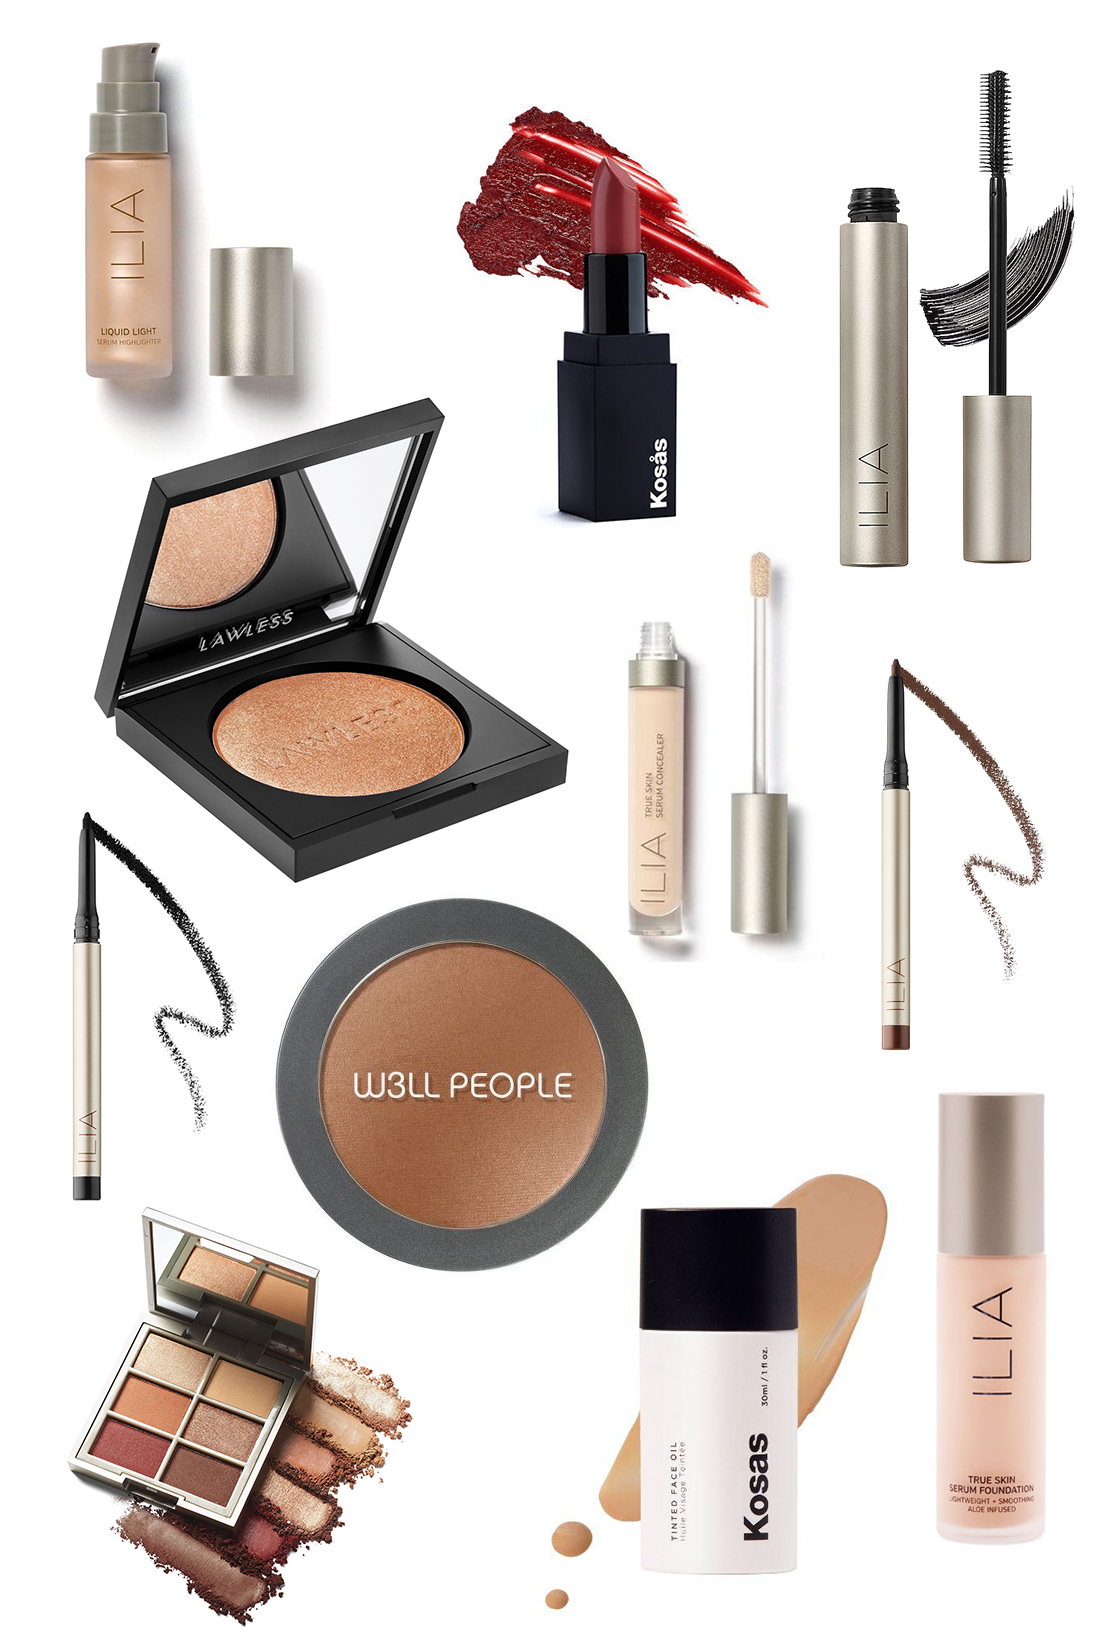 chemical free makeup brands and products - the stripe